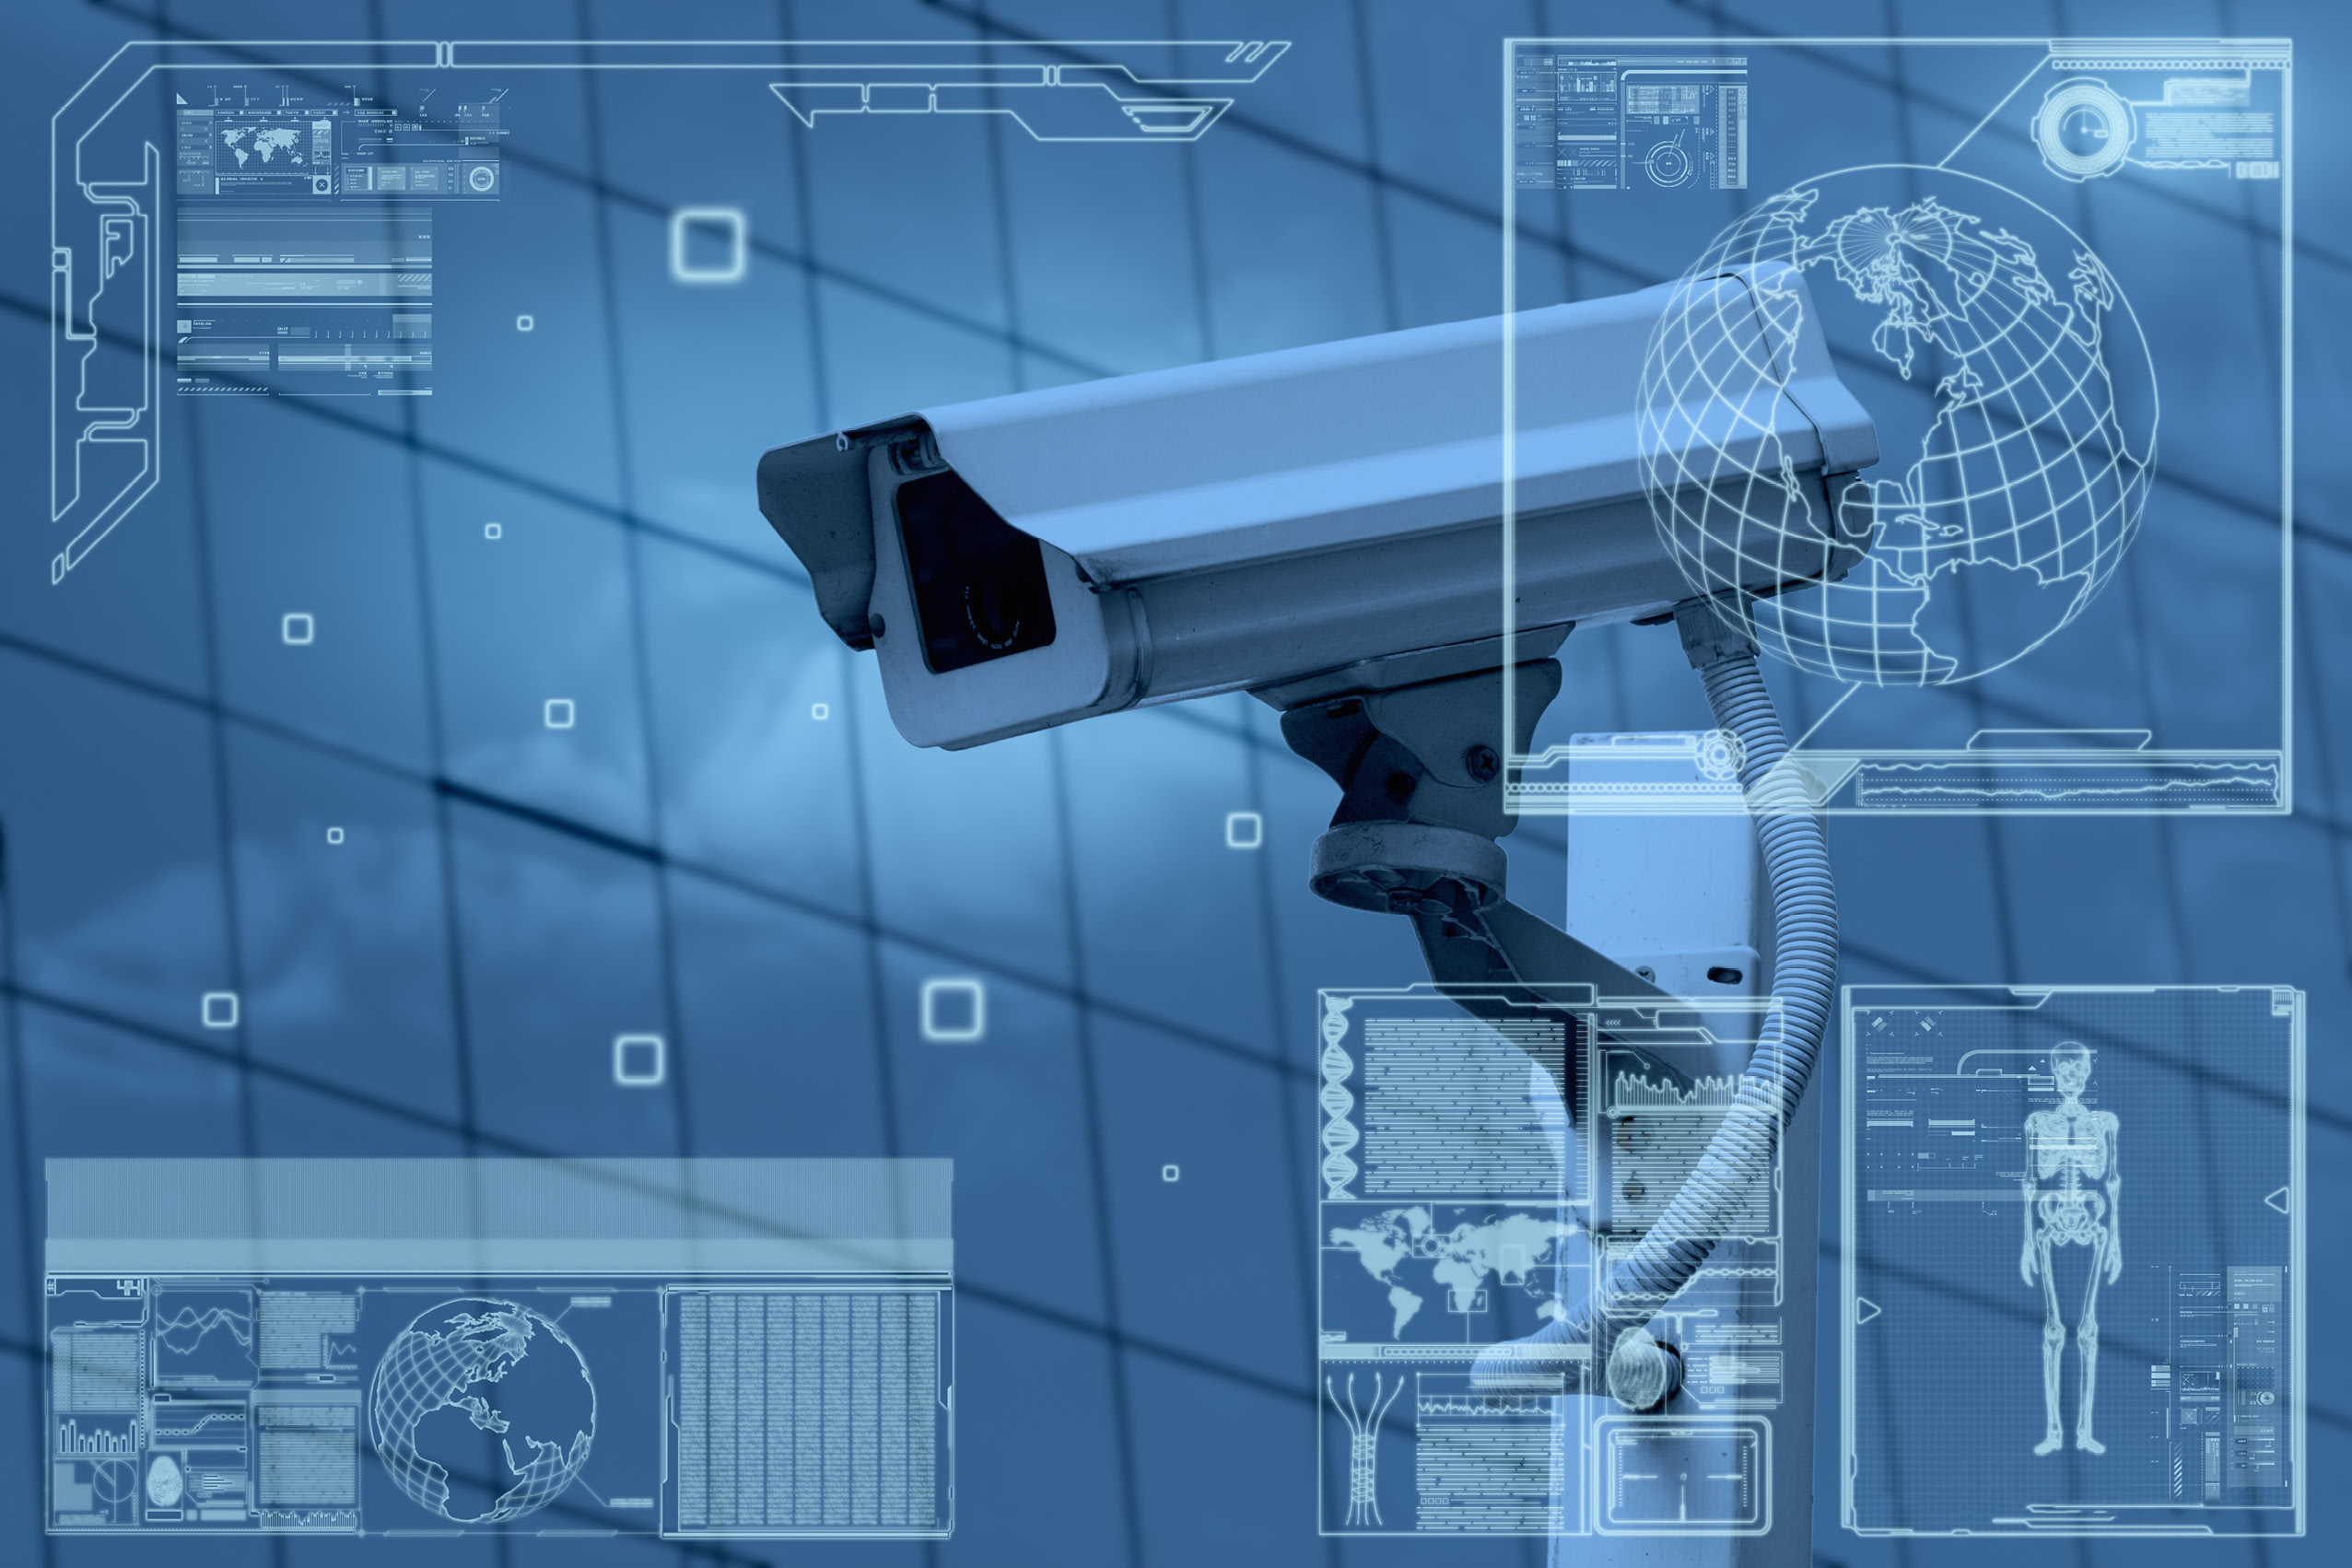 different it security systems Home security systemscom how we're different why waste time and energy digging through different home security sites when you're already stressed let us handle the hard part so you can get back to what matters most in a safer, more secure home.